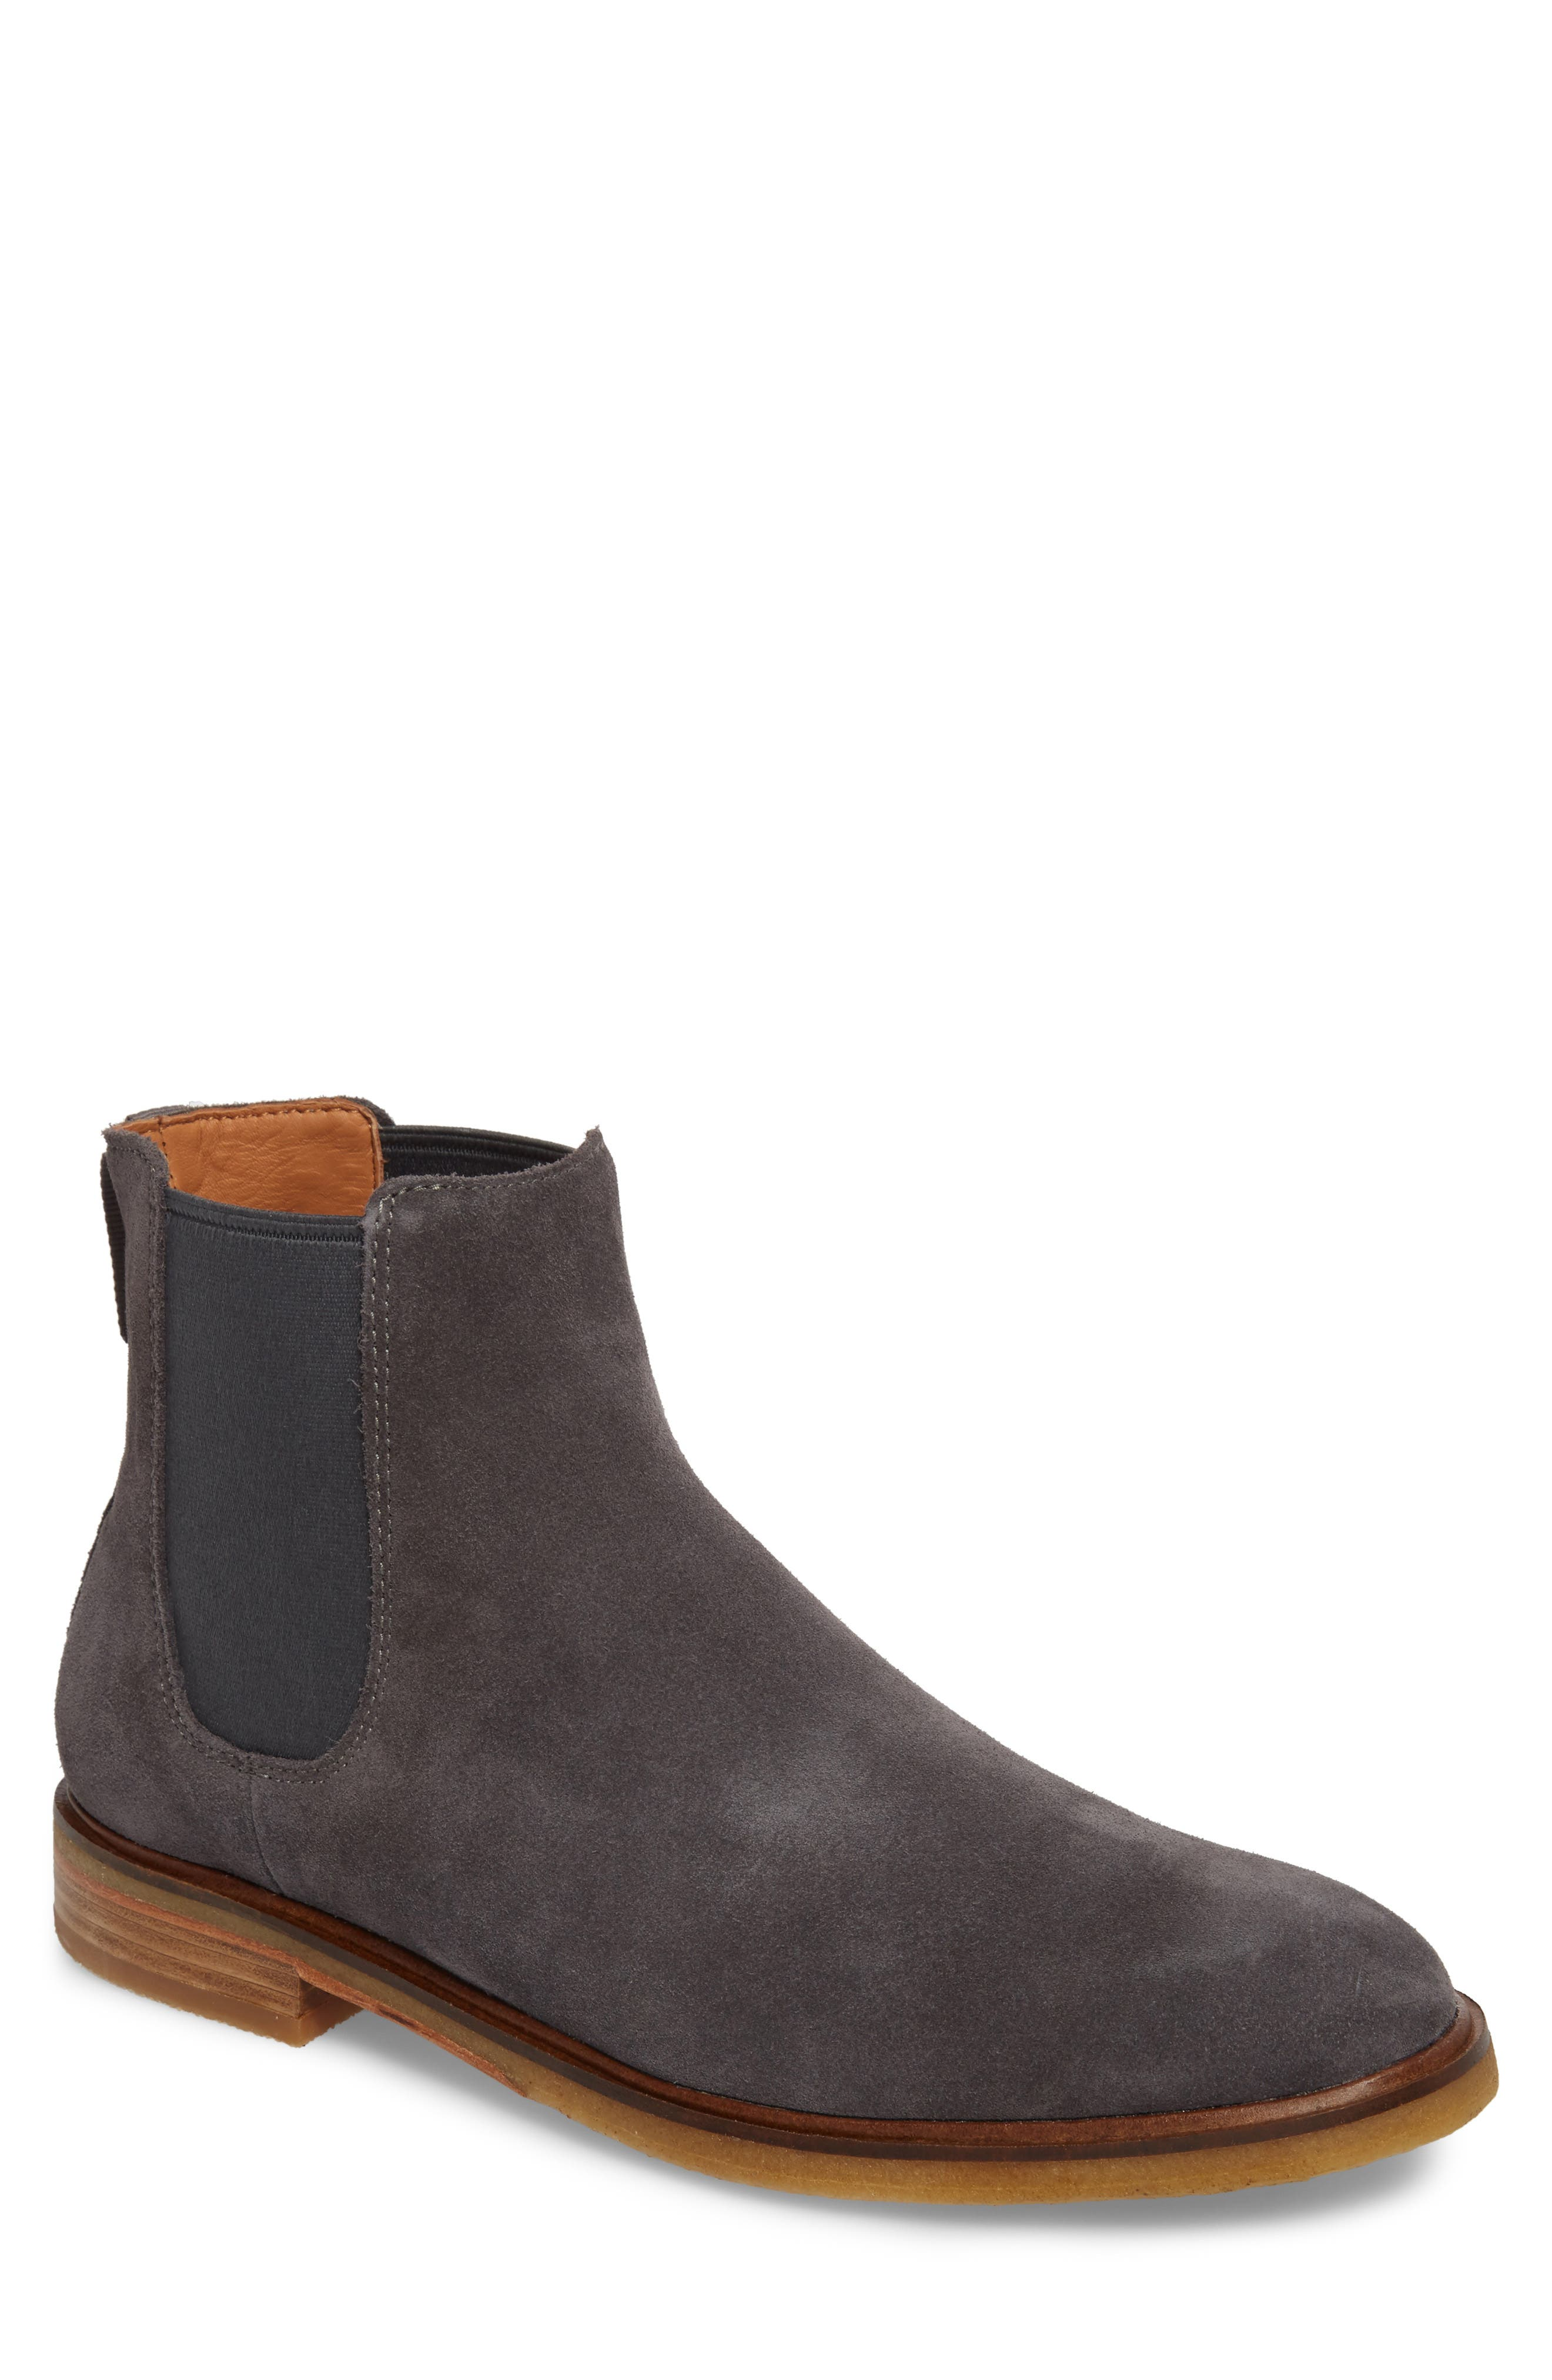 Clarkdale Chelsea Boot,                         Main,                         color, GREY SUEDE